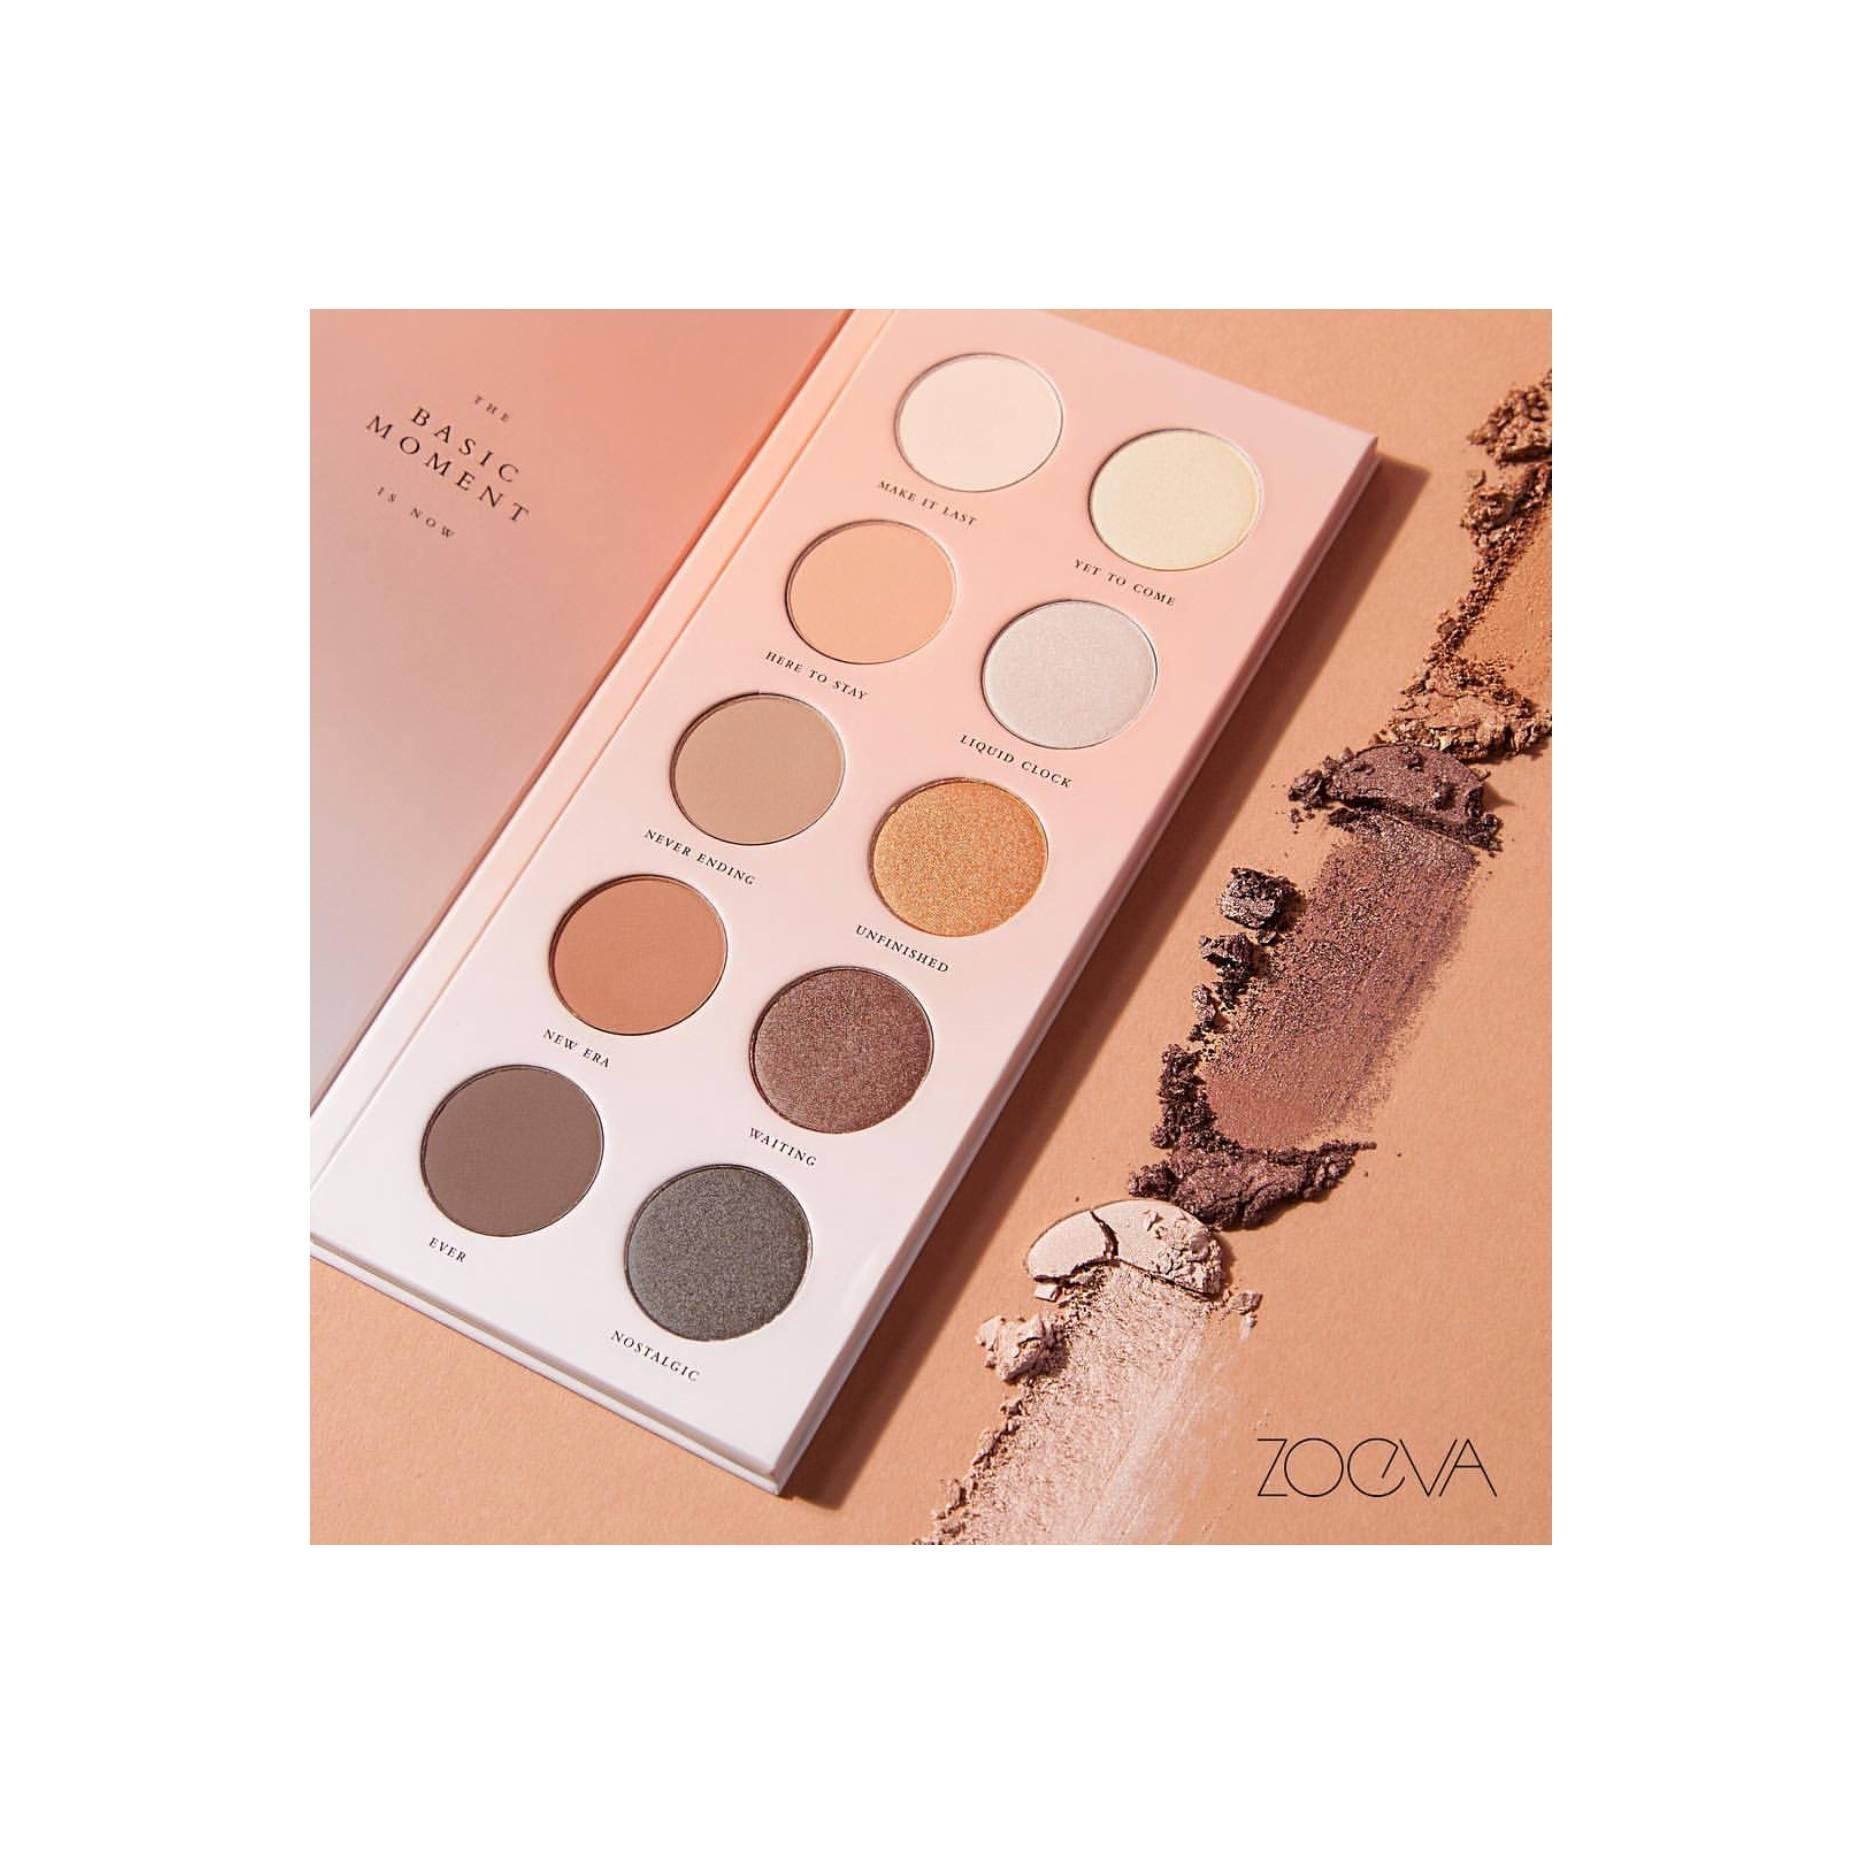 ZOEVA The Basic Moments Eyeshadow Palette